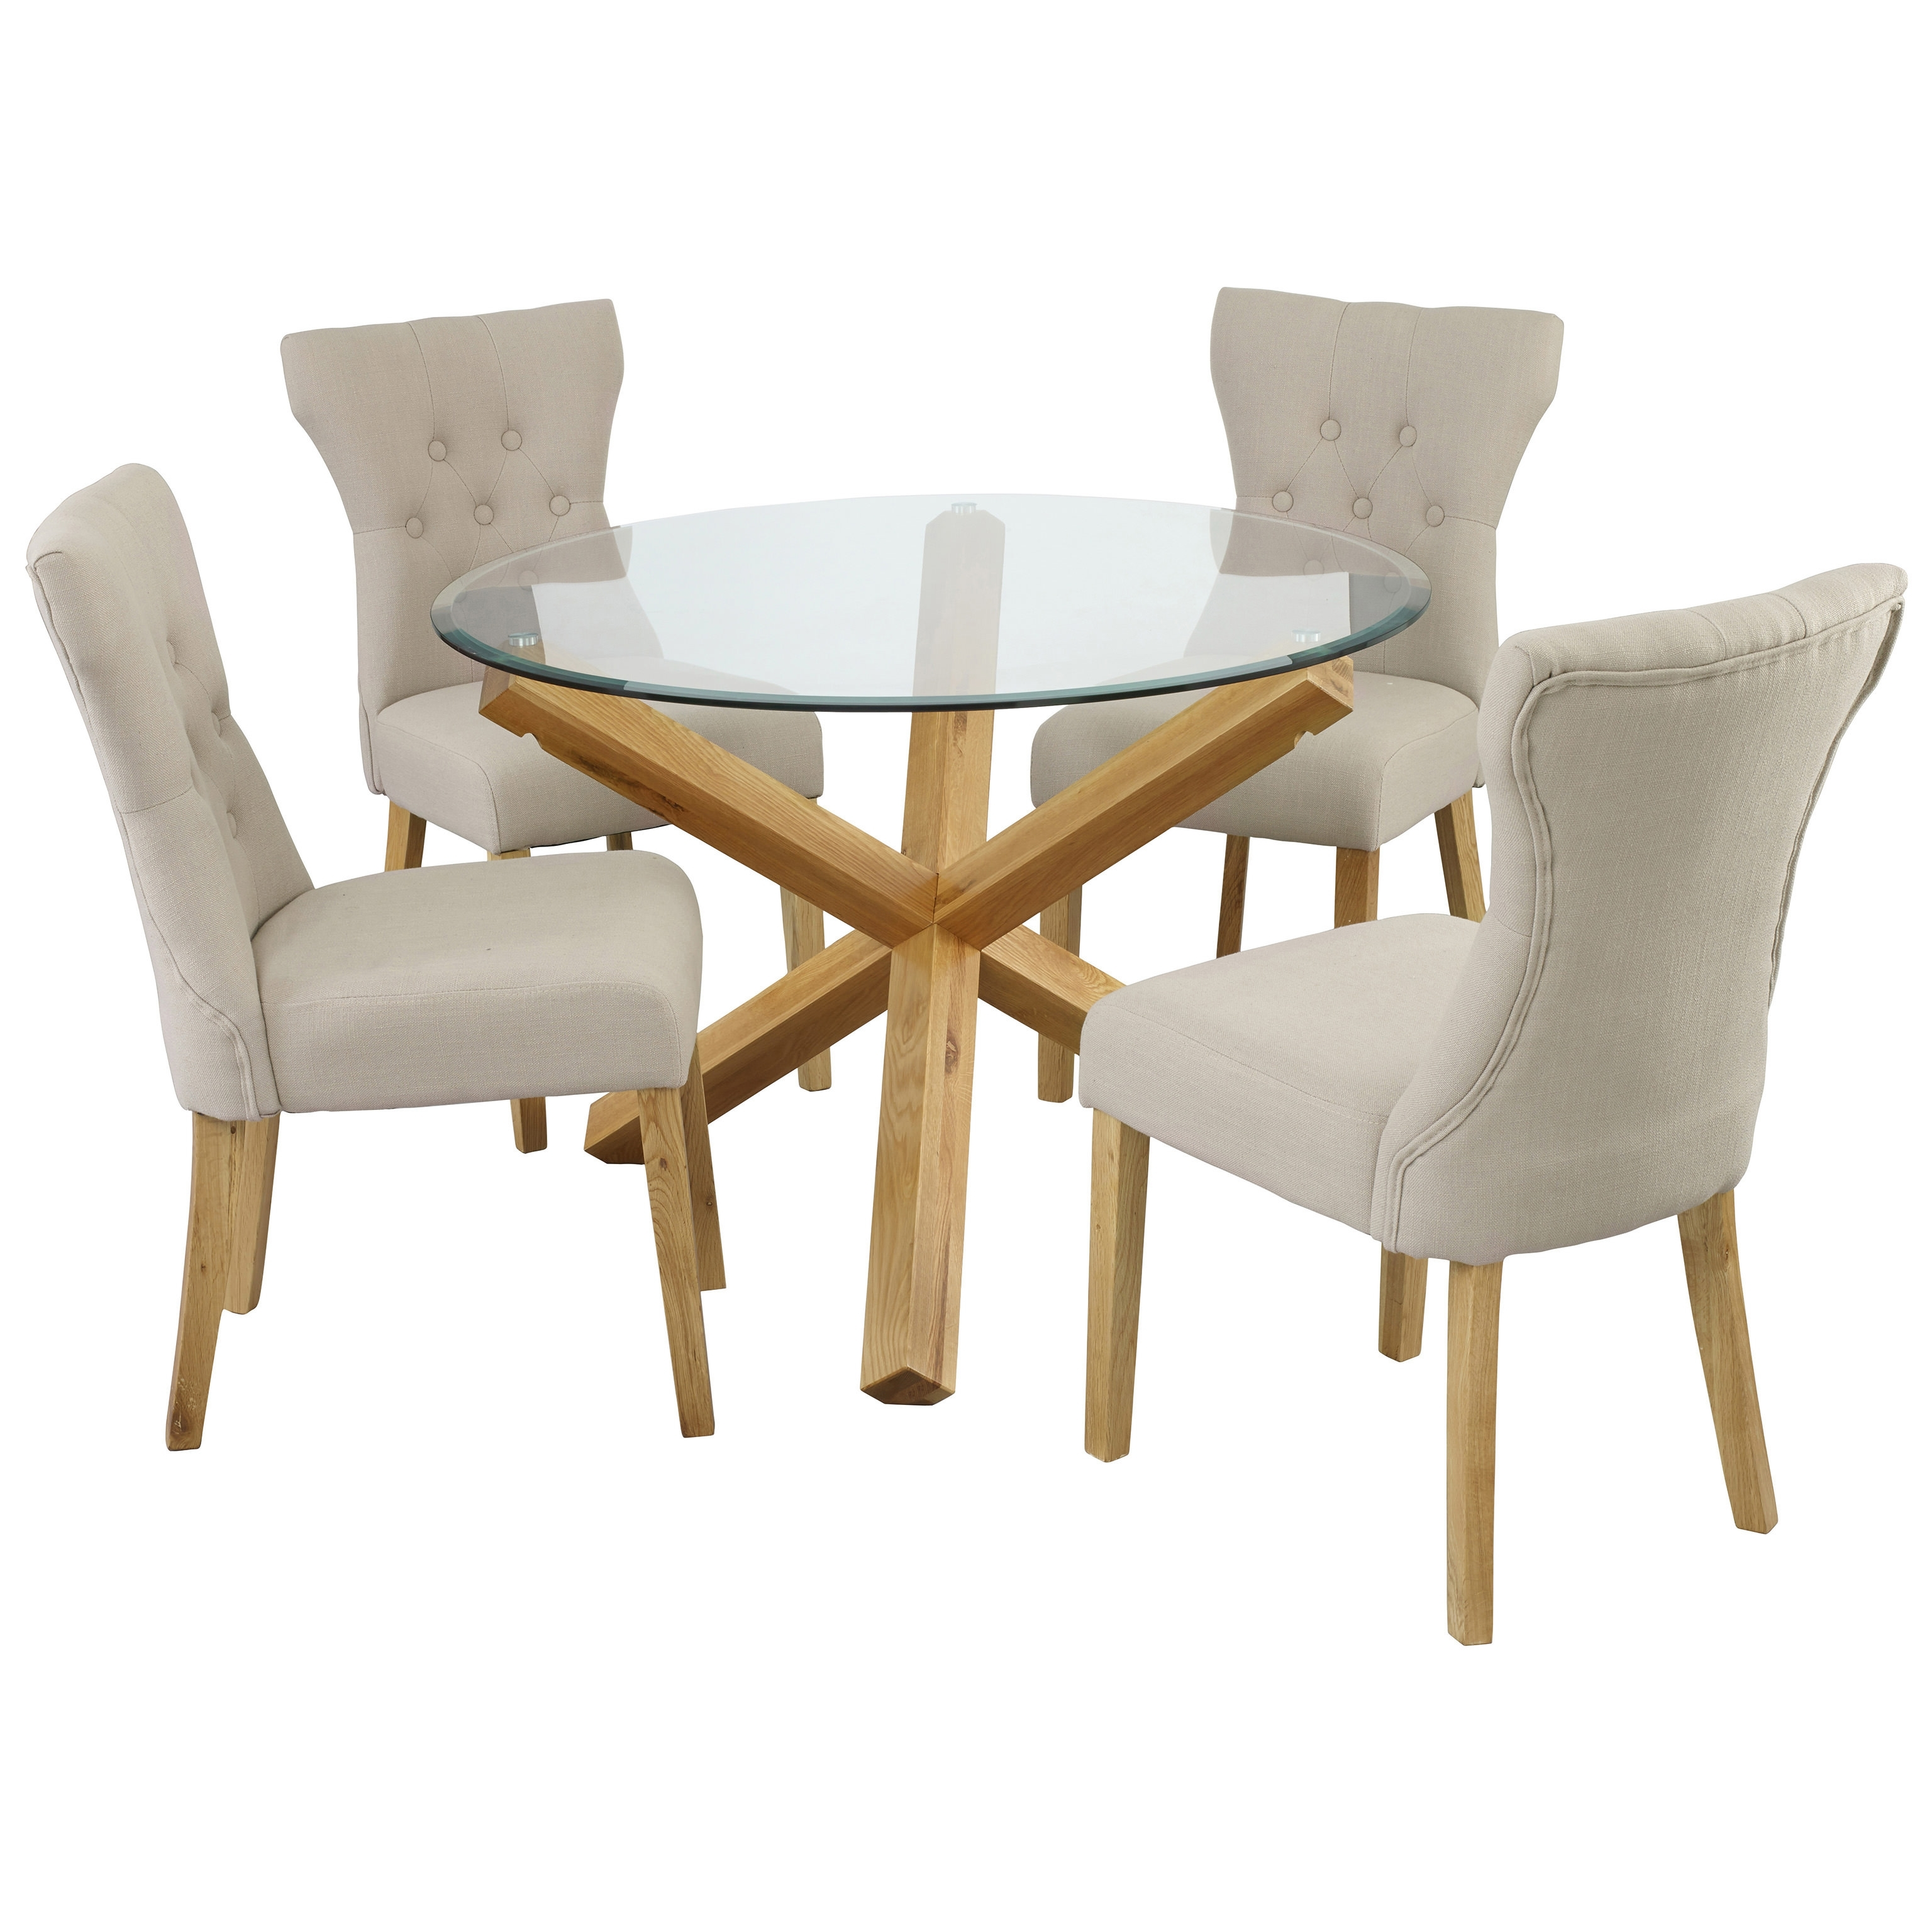 Oak & Glass Round Dining Table And Chair Set With 4 Fabric Seats Regarding Recent Cheap Oak Dining Tables (View 22 of 25)